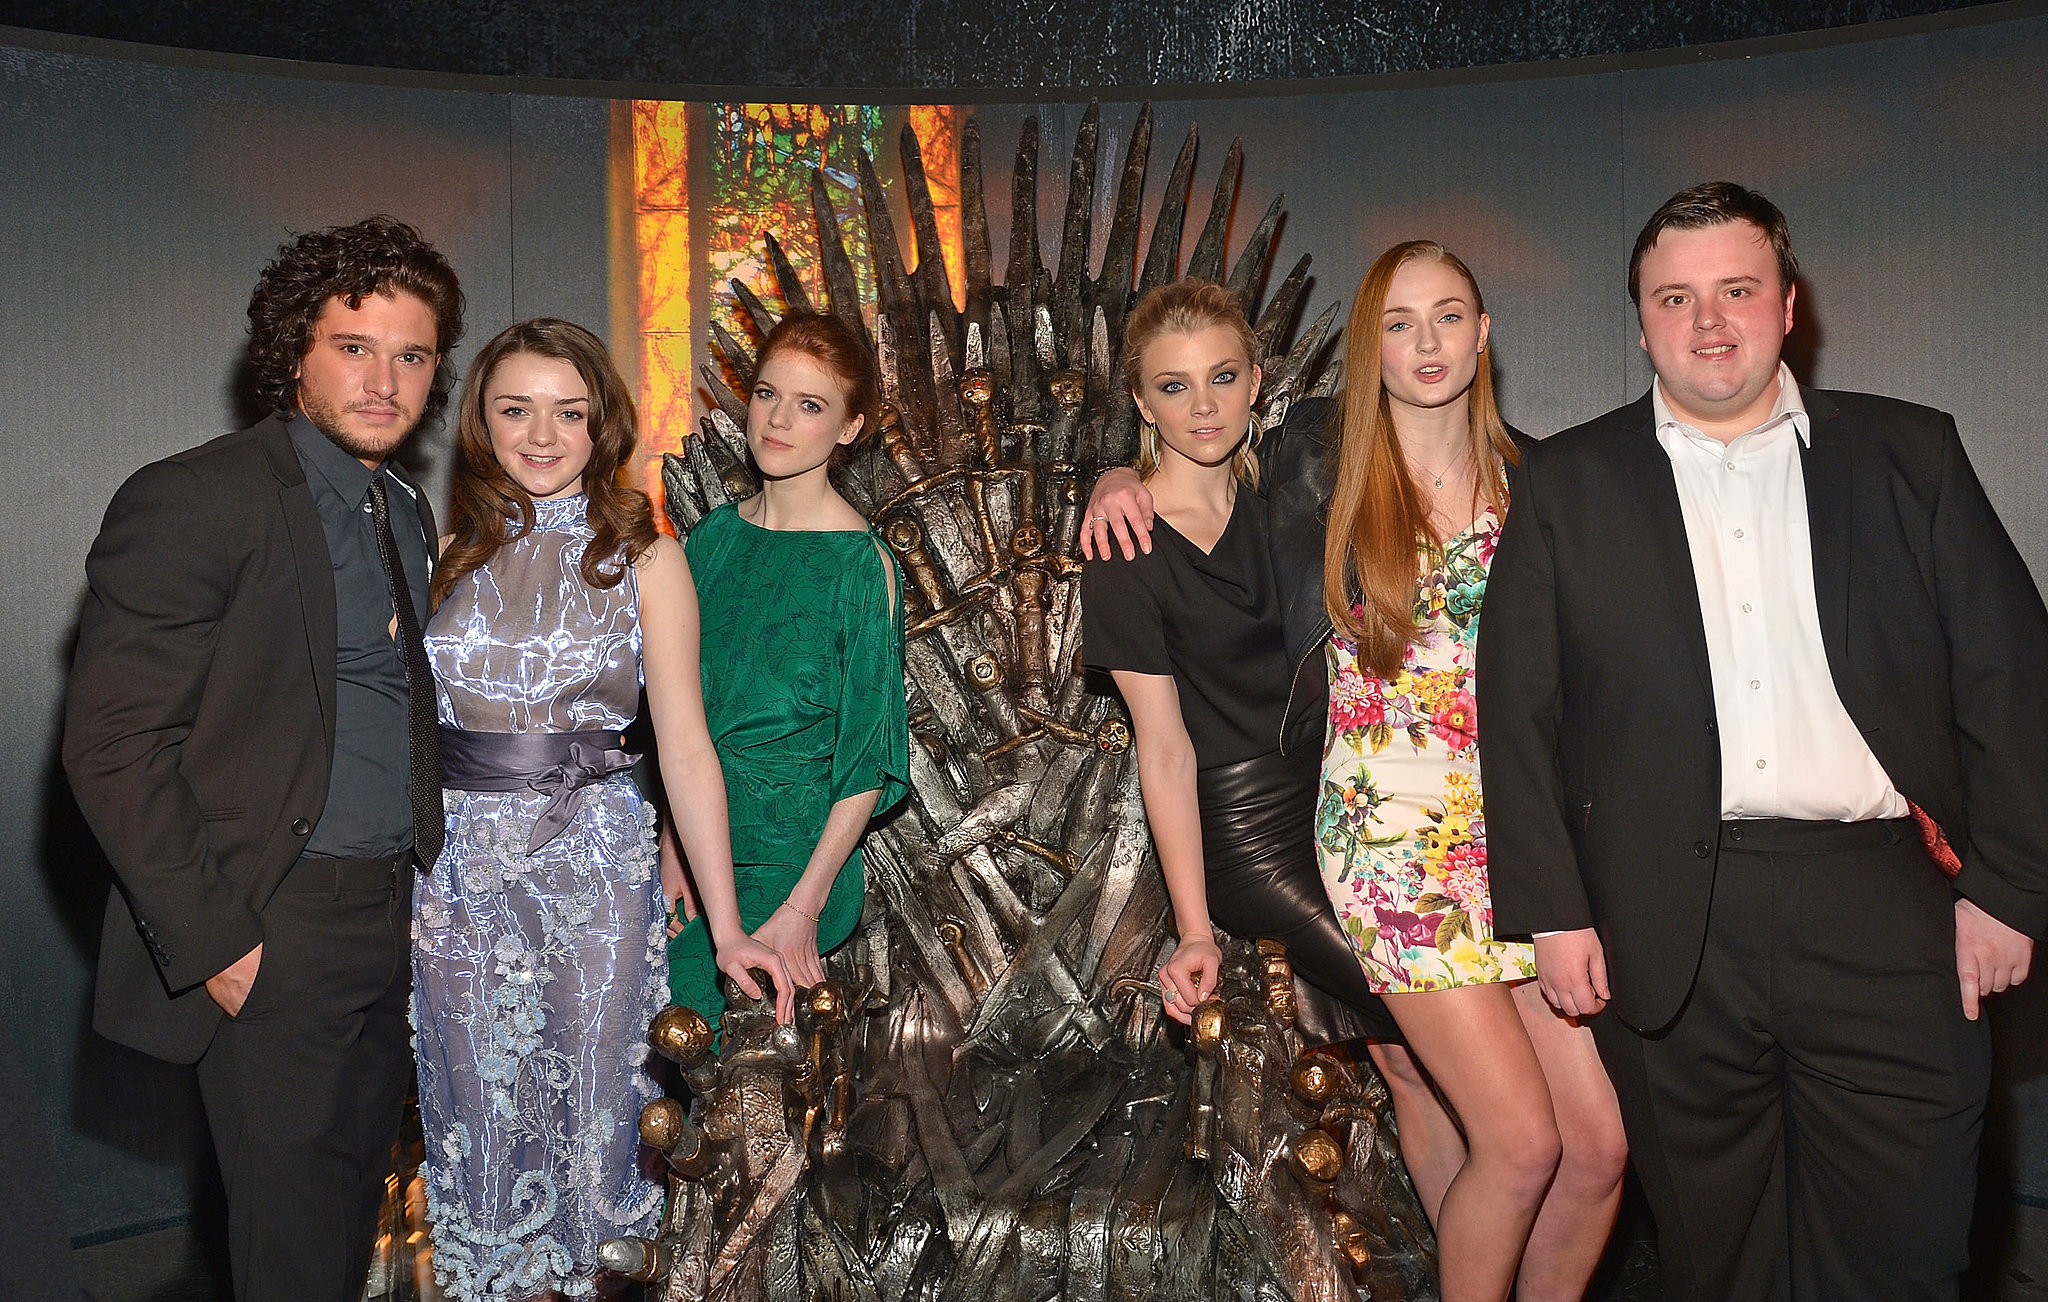 The Very Next Day, Maisie Williams Was Still in the Way